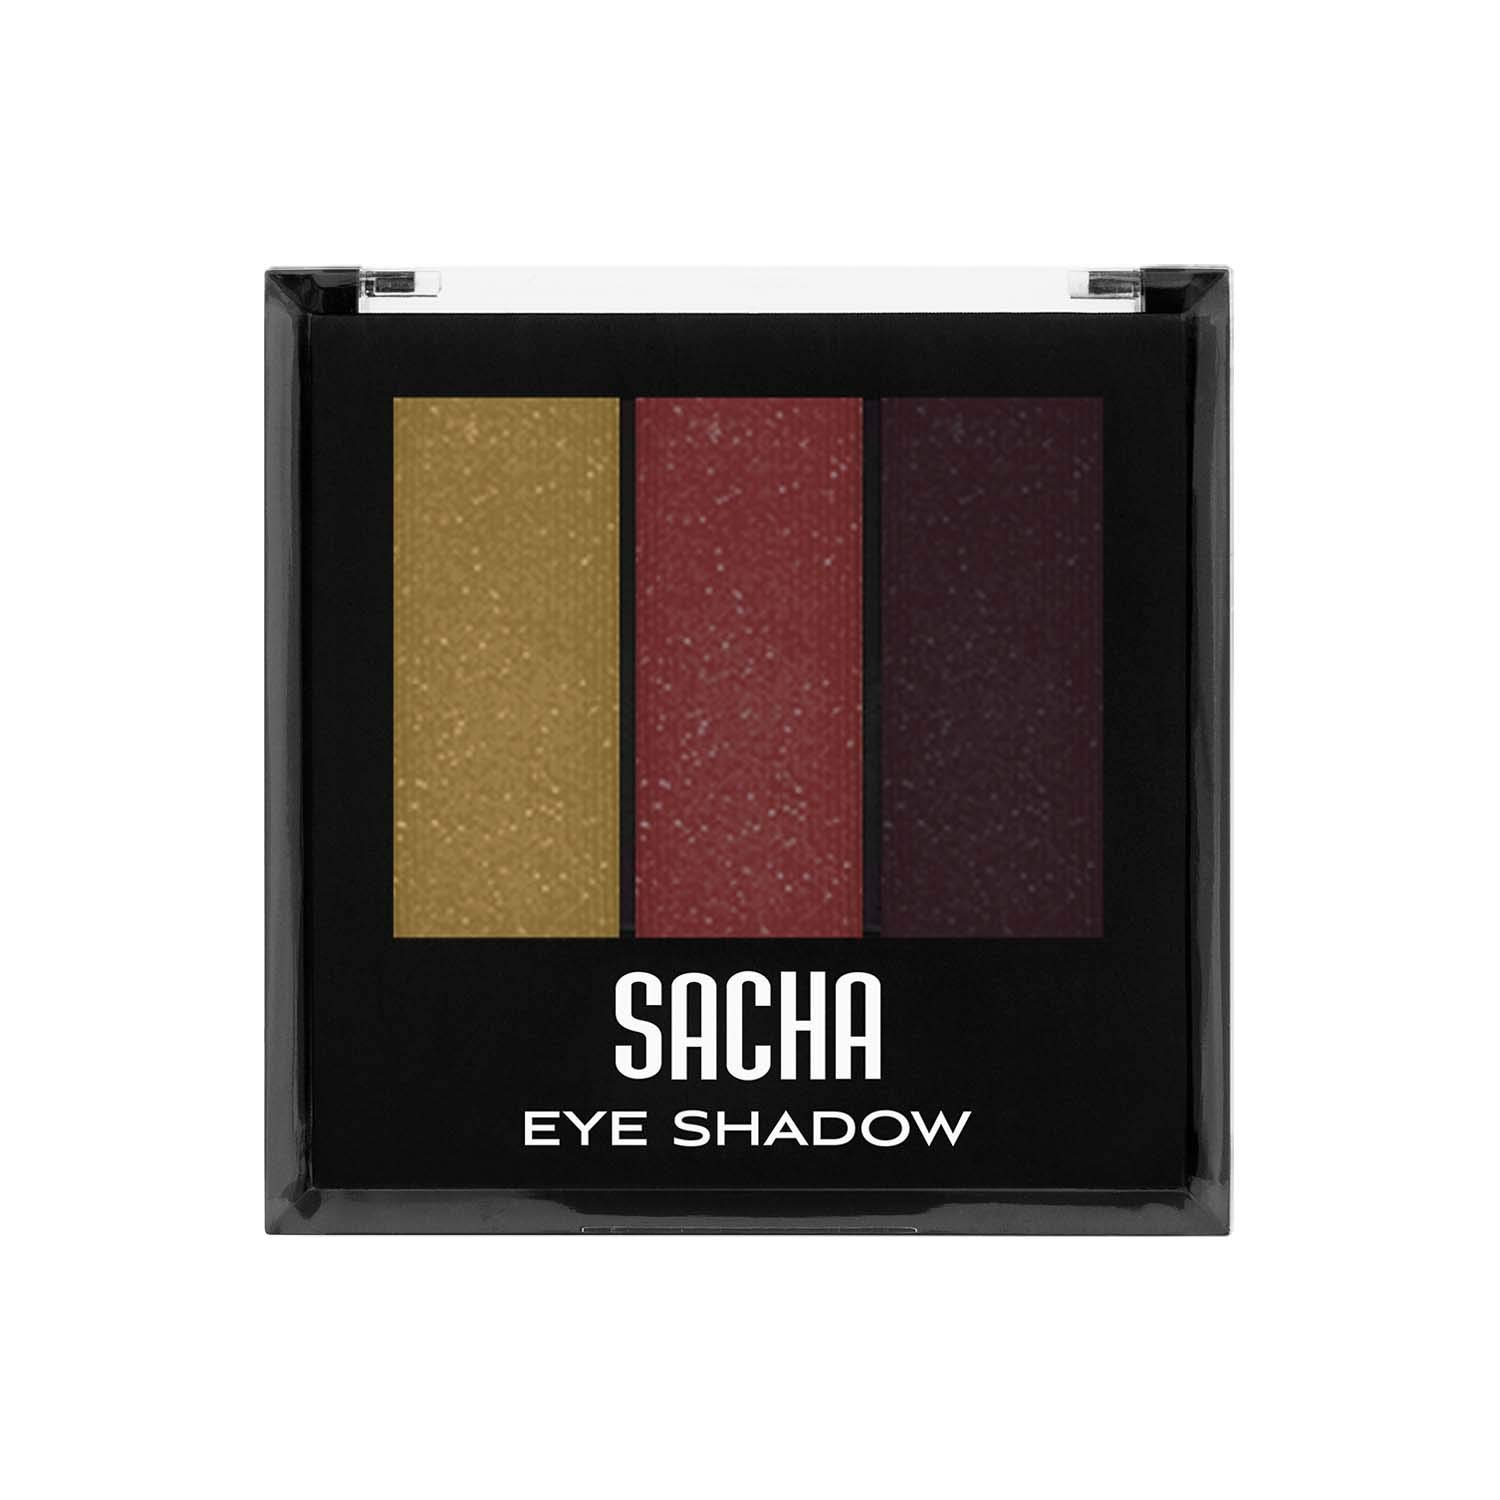 Trio Eye Shadow by Sacha Cosmetics, Best Highly Pigmented Eyeshadow Makeup Powder, Shimmer Glitter & Matte Colors, 1.2 Oz, Perfect Wendy 1